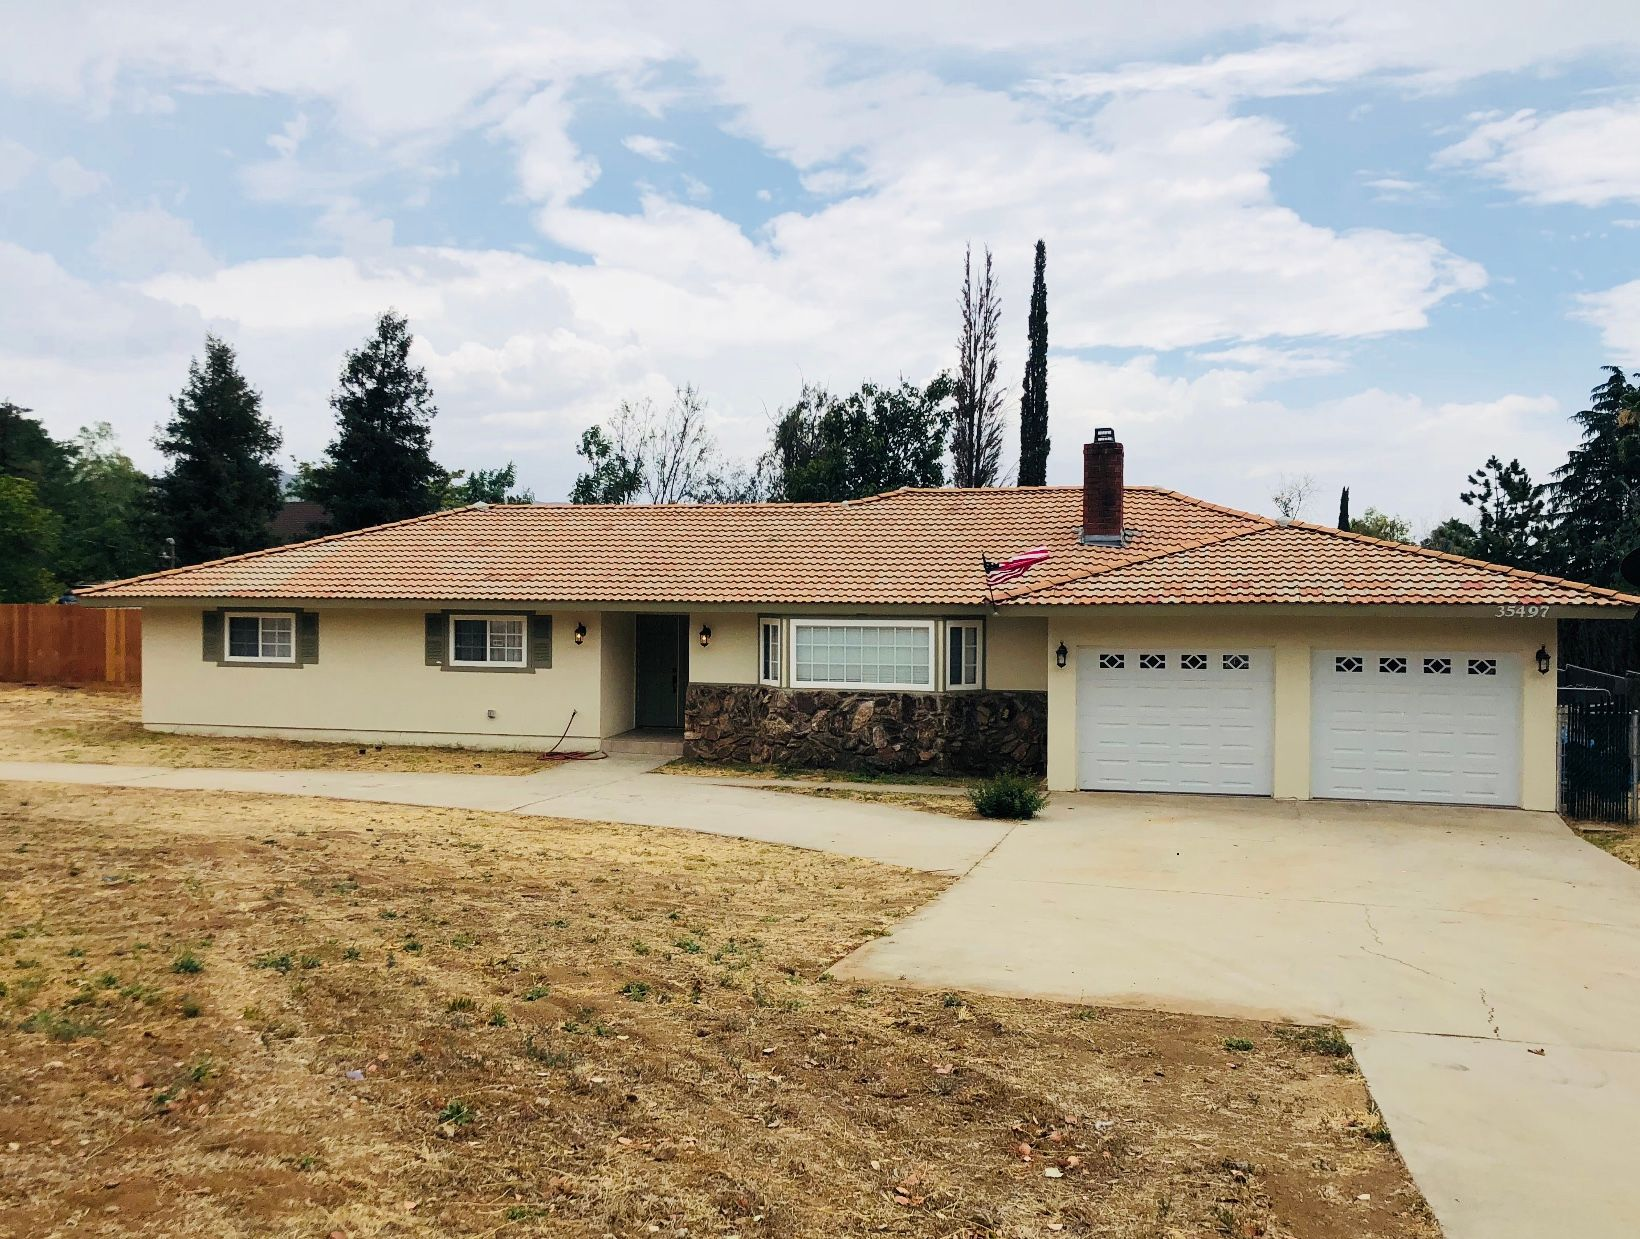 35497 Ivy Ave, Yucaipa, CA 92399 - 36 Photos | Trulia on homes for rent in waco tx, homes for rent in vicksburg ms, homes for rent in yukon ok, homes for rent in white plains ny,